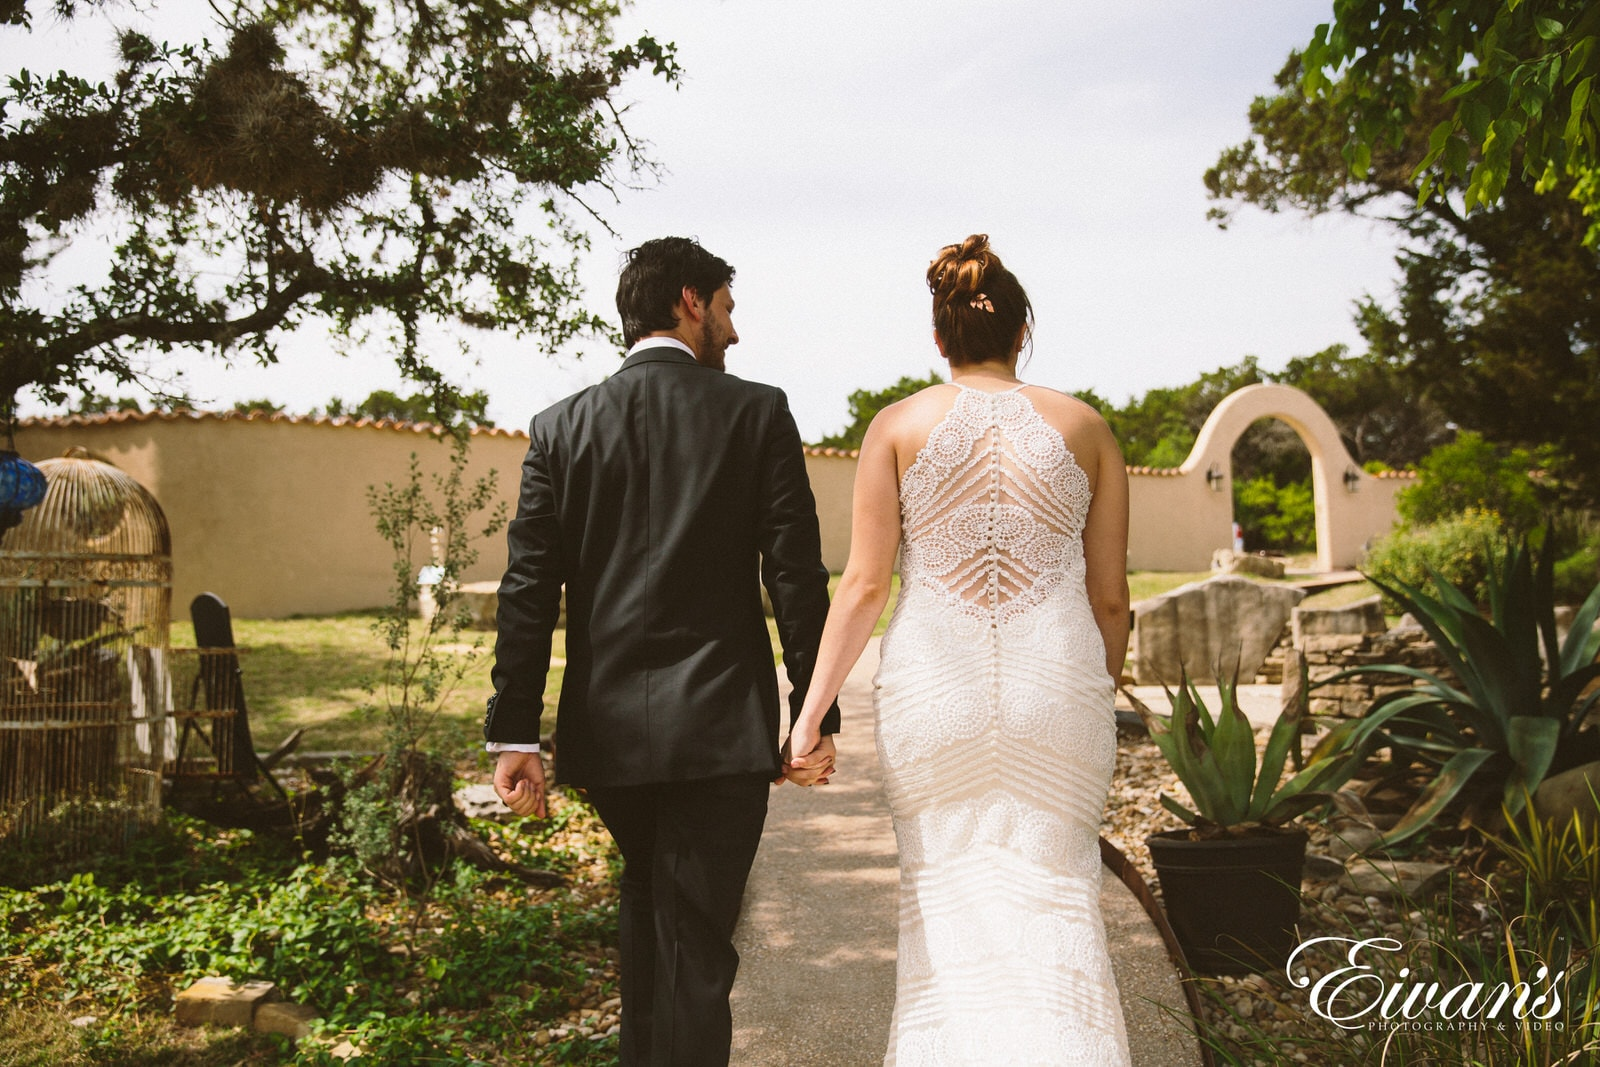 man in black suit and woman in white wedding dress walking on green grass field during